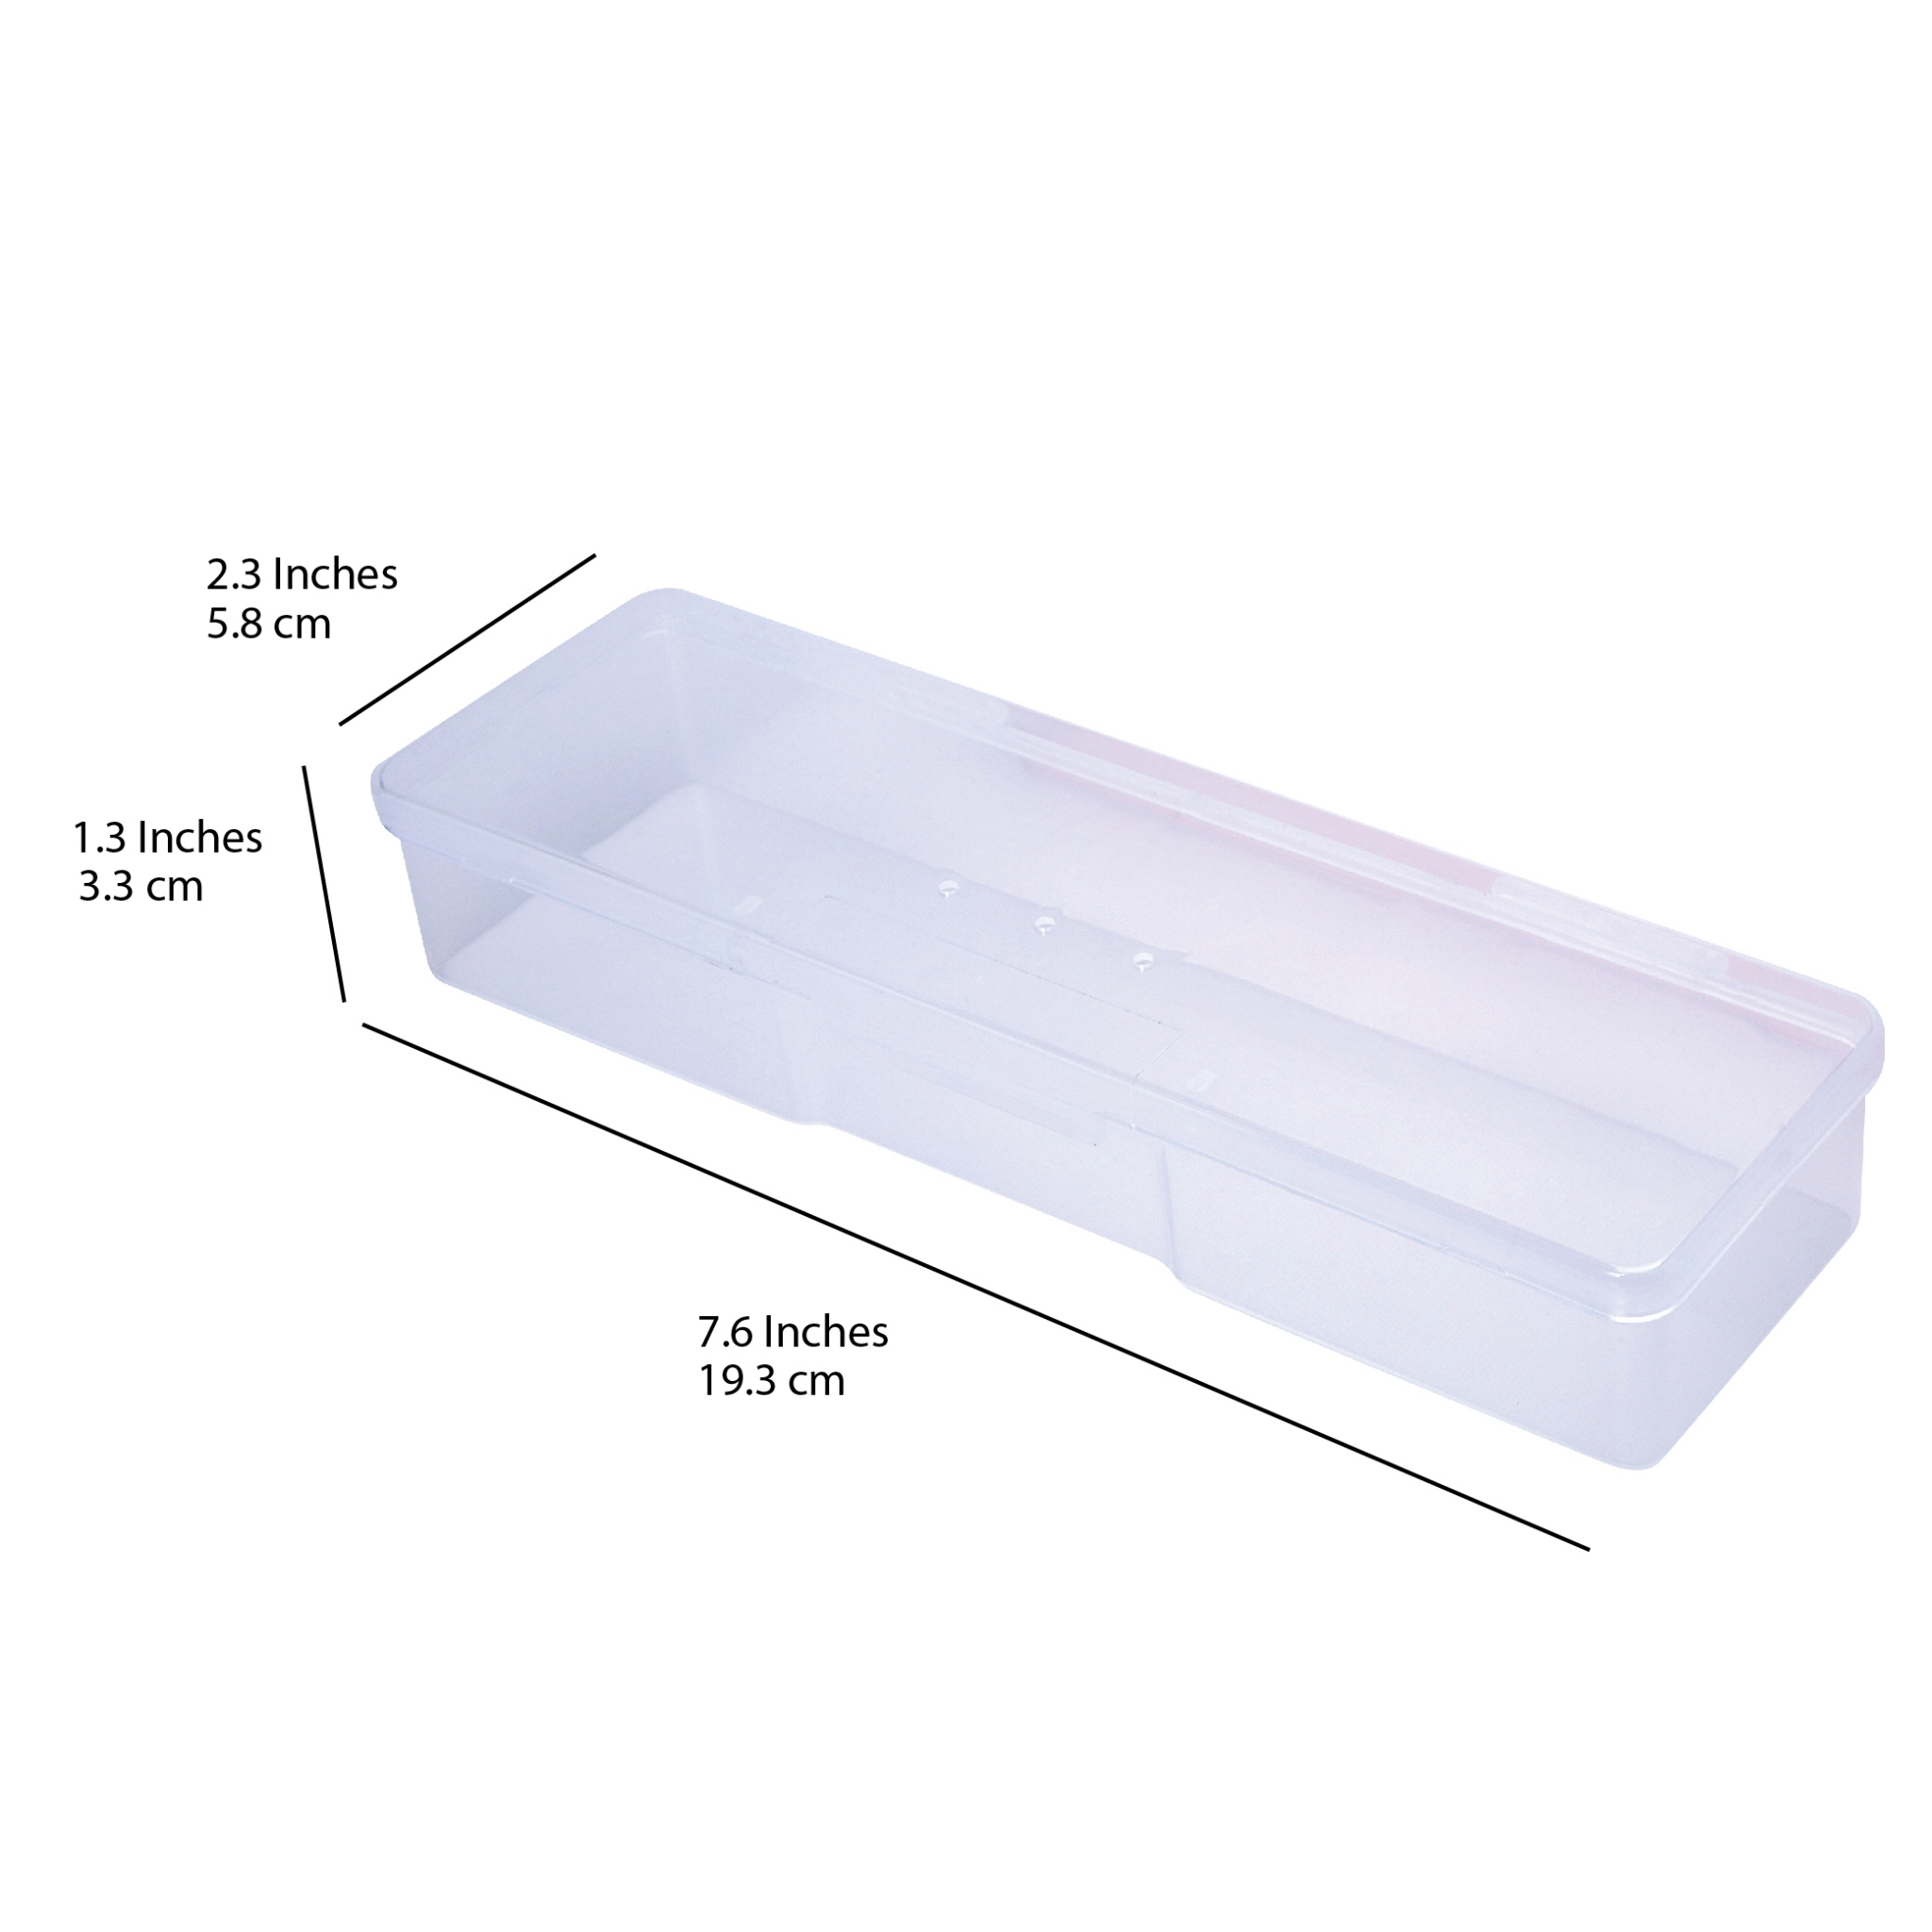 26050 - Small Personal#Storage Box#200 pcs/case